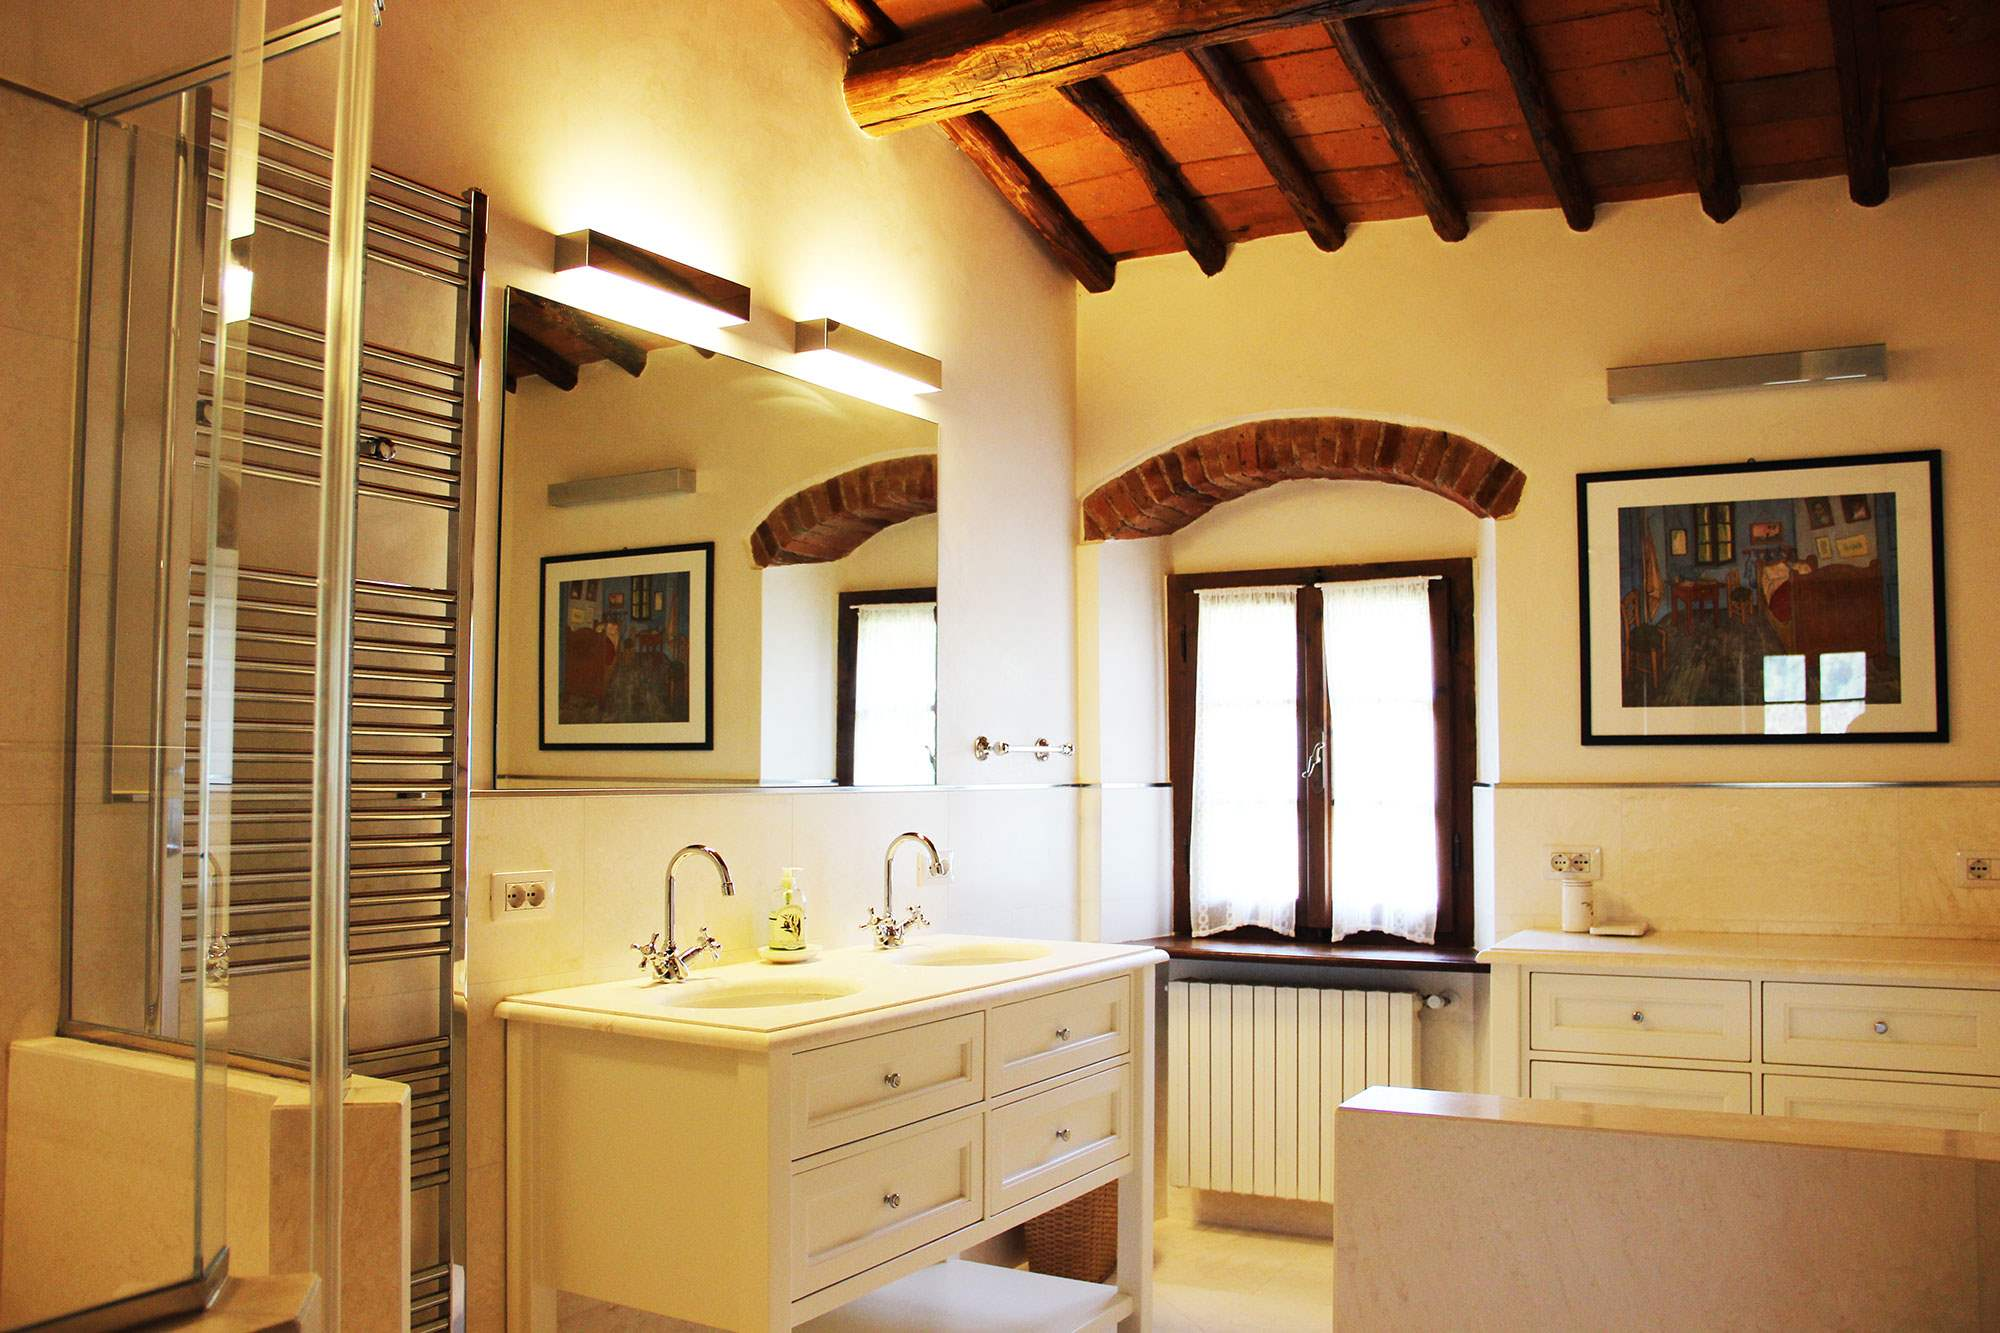 Villa Felicita, Main house only, 6 persons rate, 3 bedroom villa in Chianti & Countryside, Tuscany Photo #14